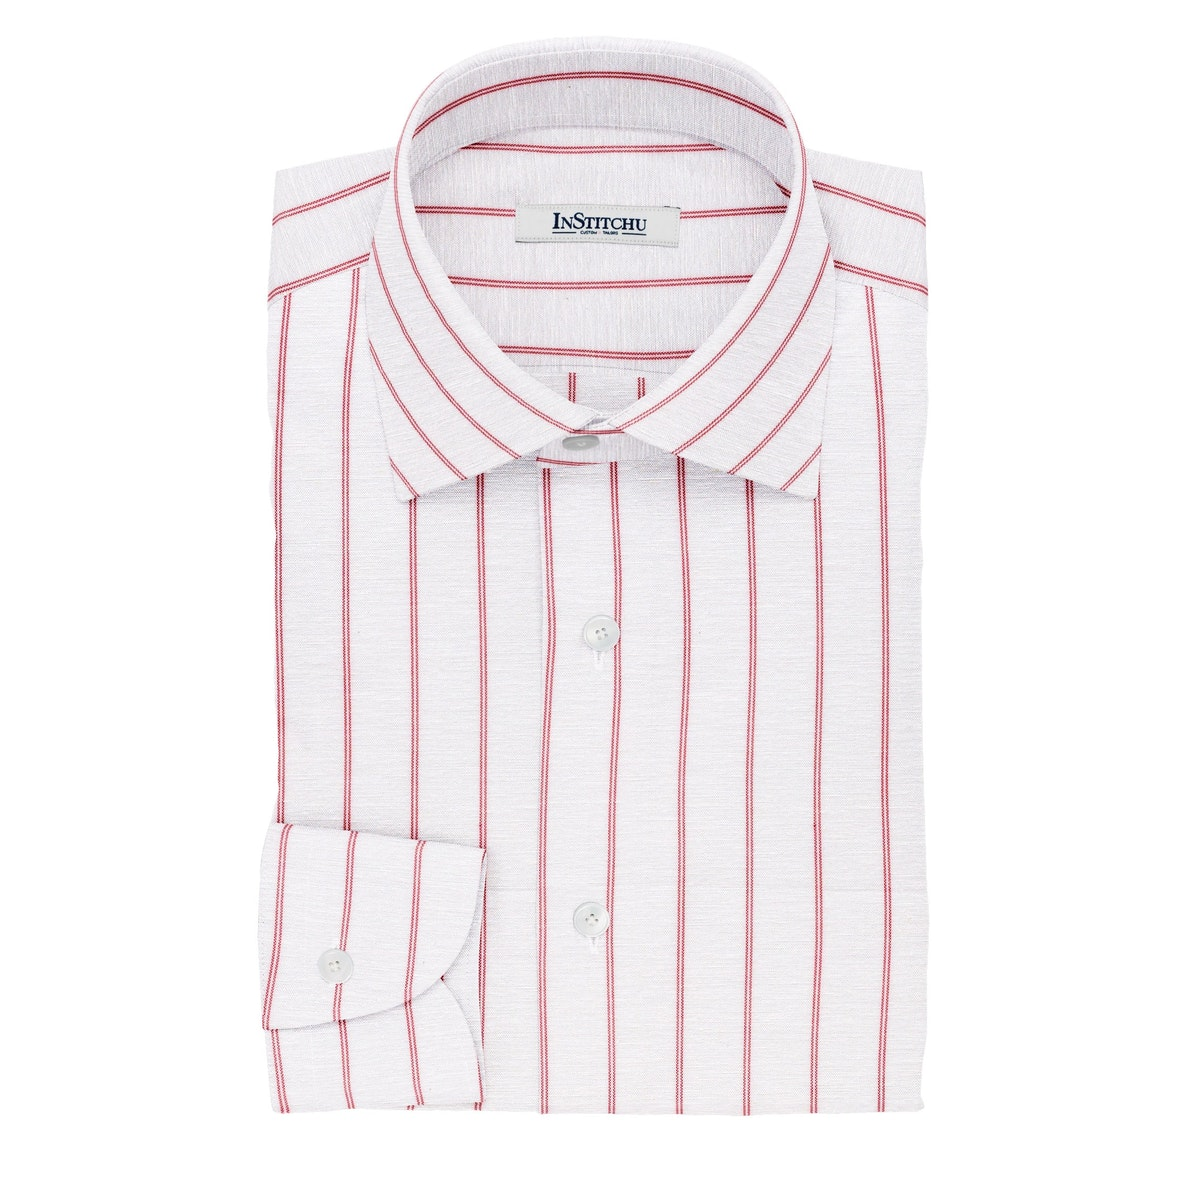 InStitchu Collection The Ambler White and Red Pinstripe Cotton Blend Shirt